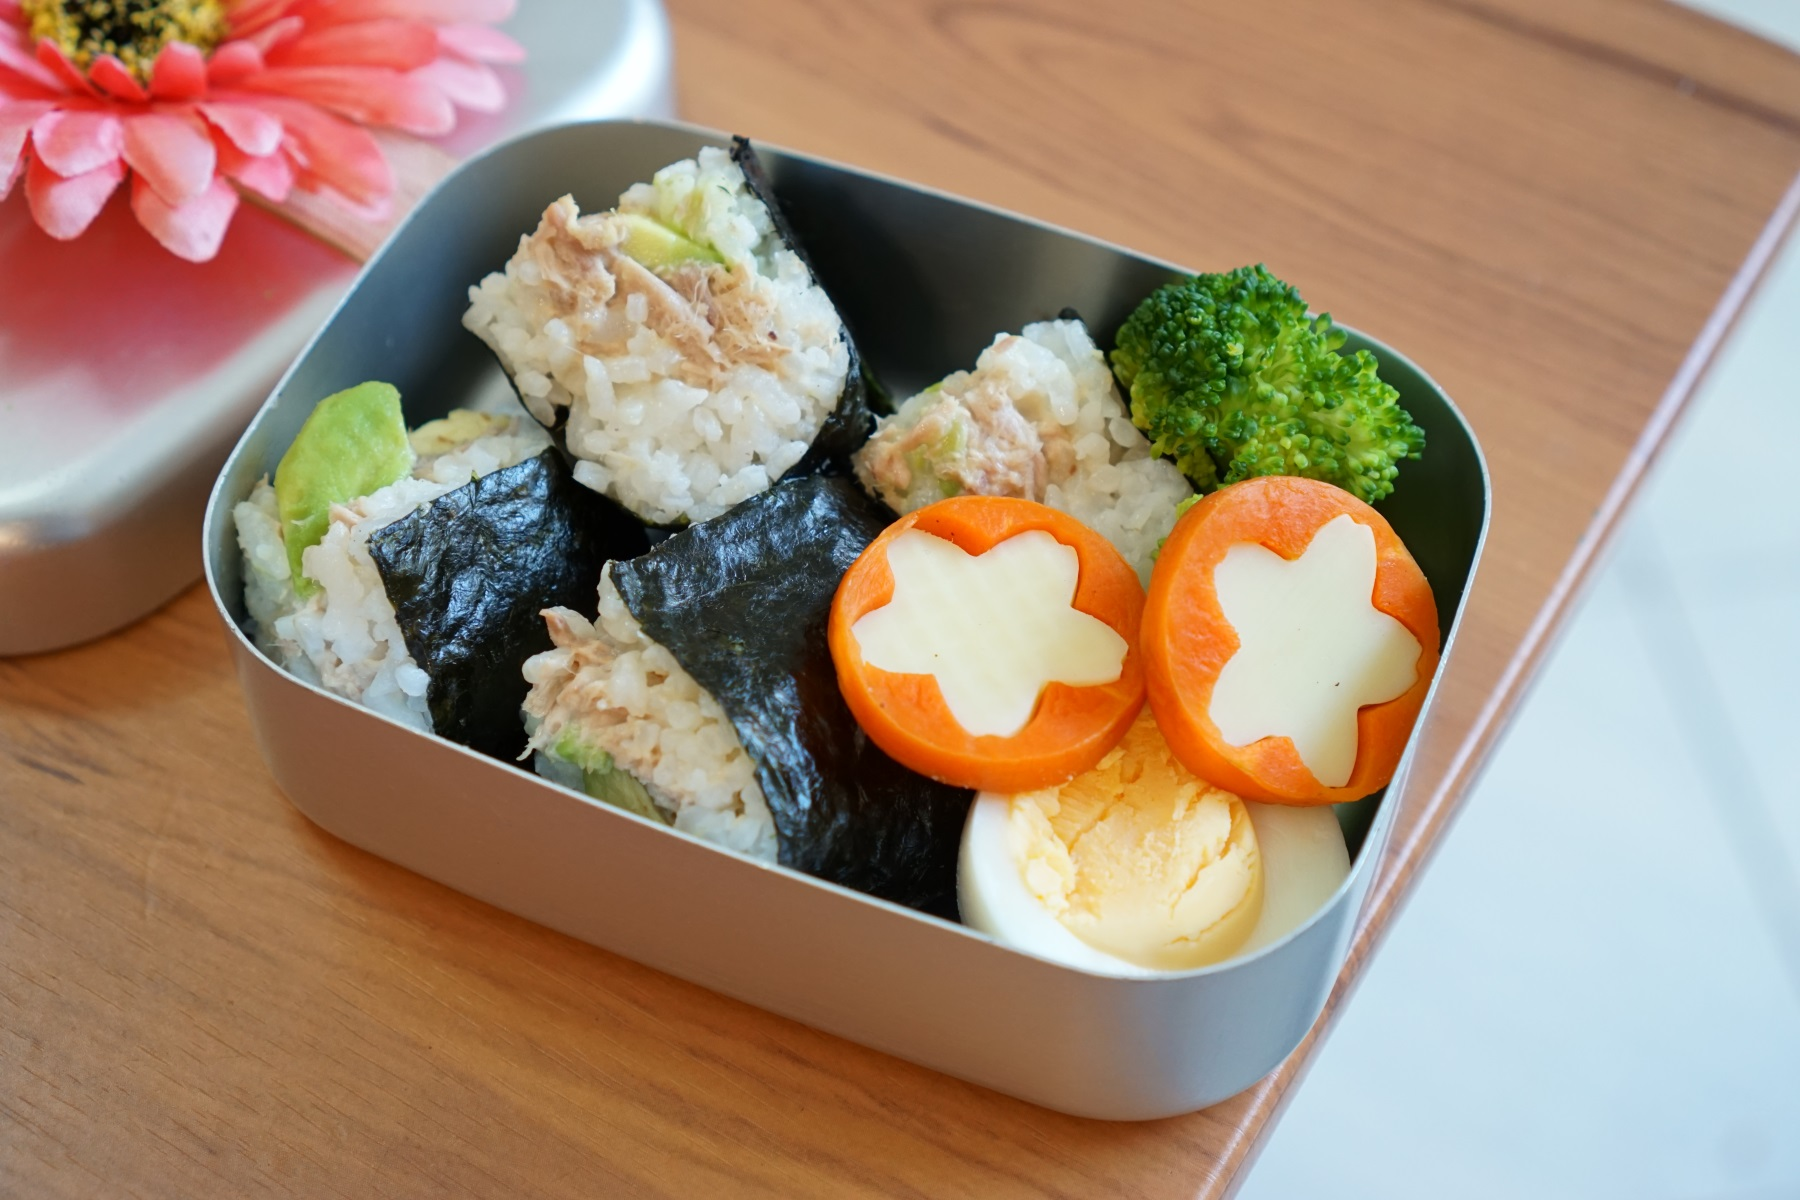 26th Tuesday  Tsuna avocado Sushi,boiled egg,broccoli and cheese in carrot.